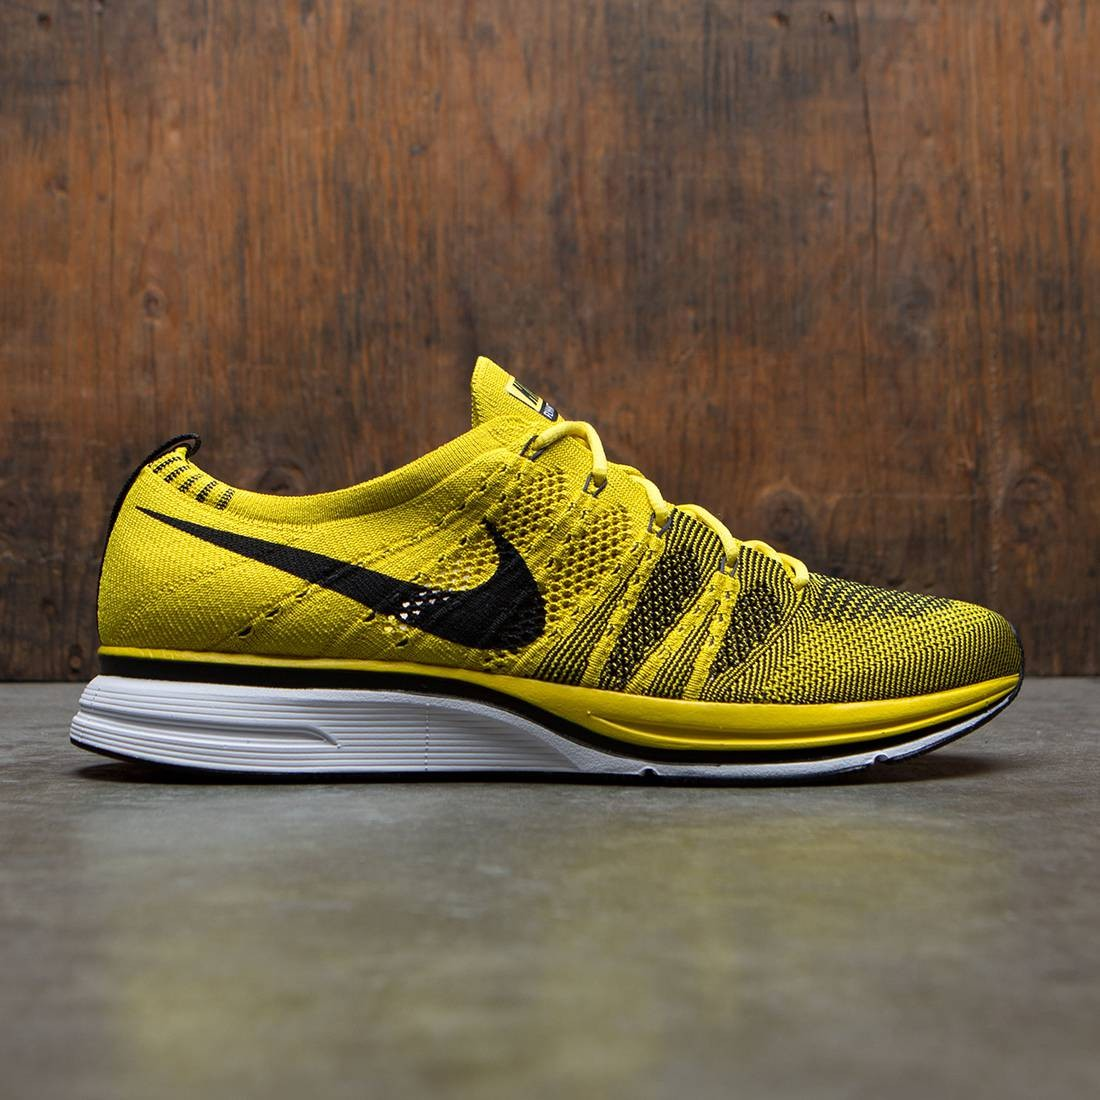 cheap for discount 3e3a6 9fbab nikelab men flyknit trainer qs yellow bright citron black white